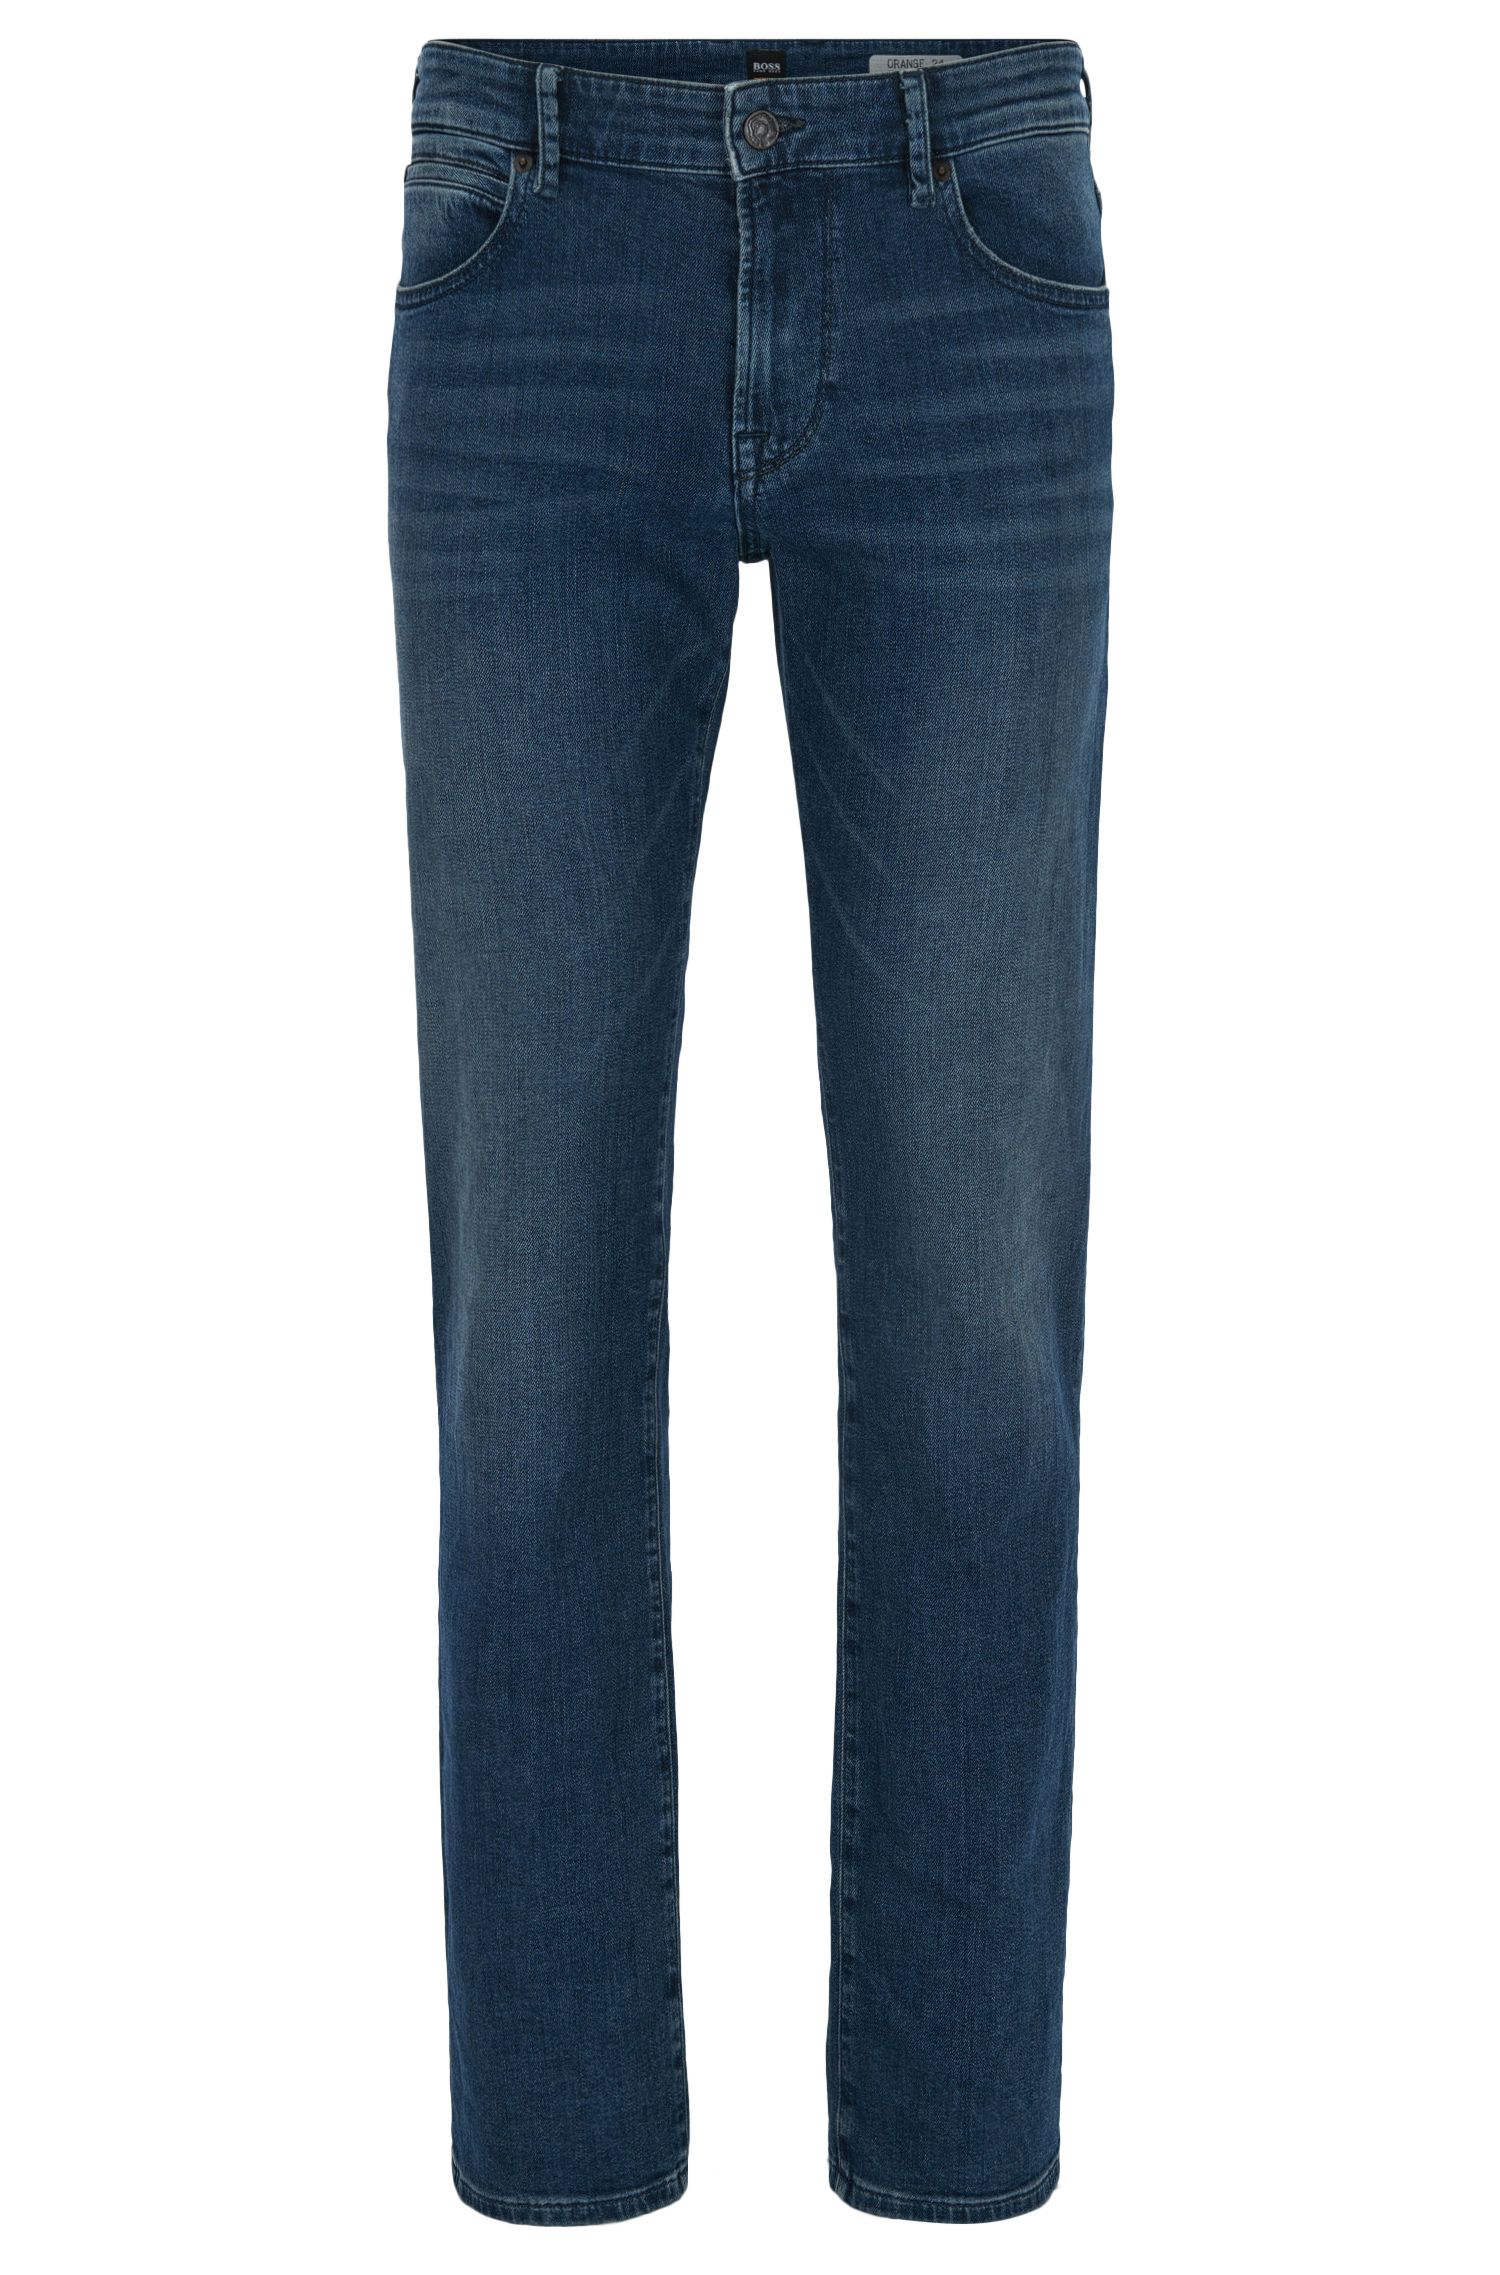 Jeans regular fit in denim elasticizzato indaco scuro